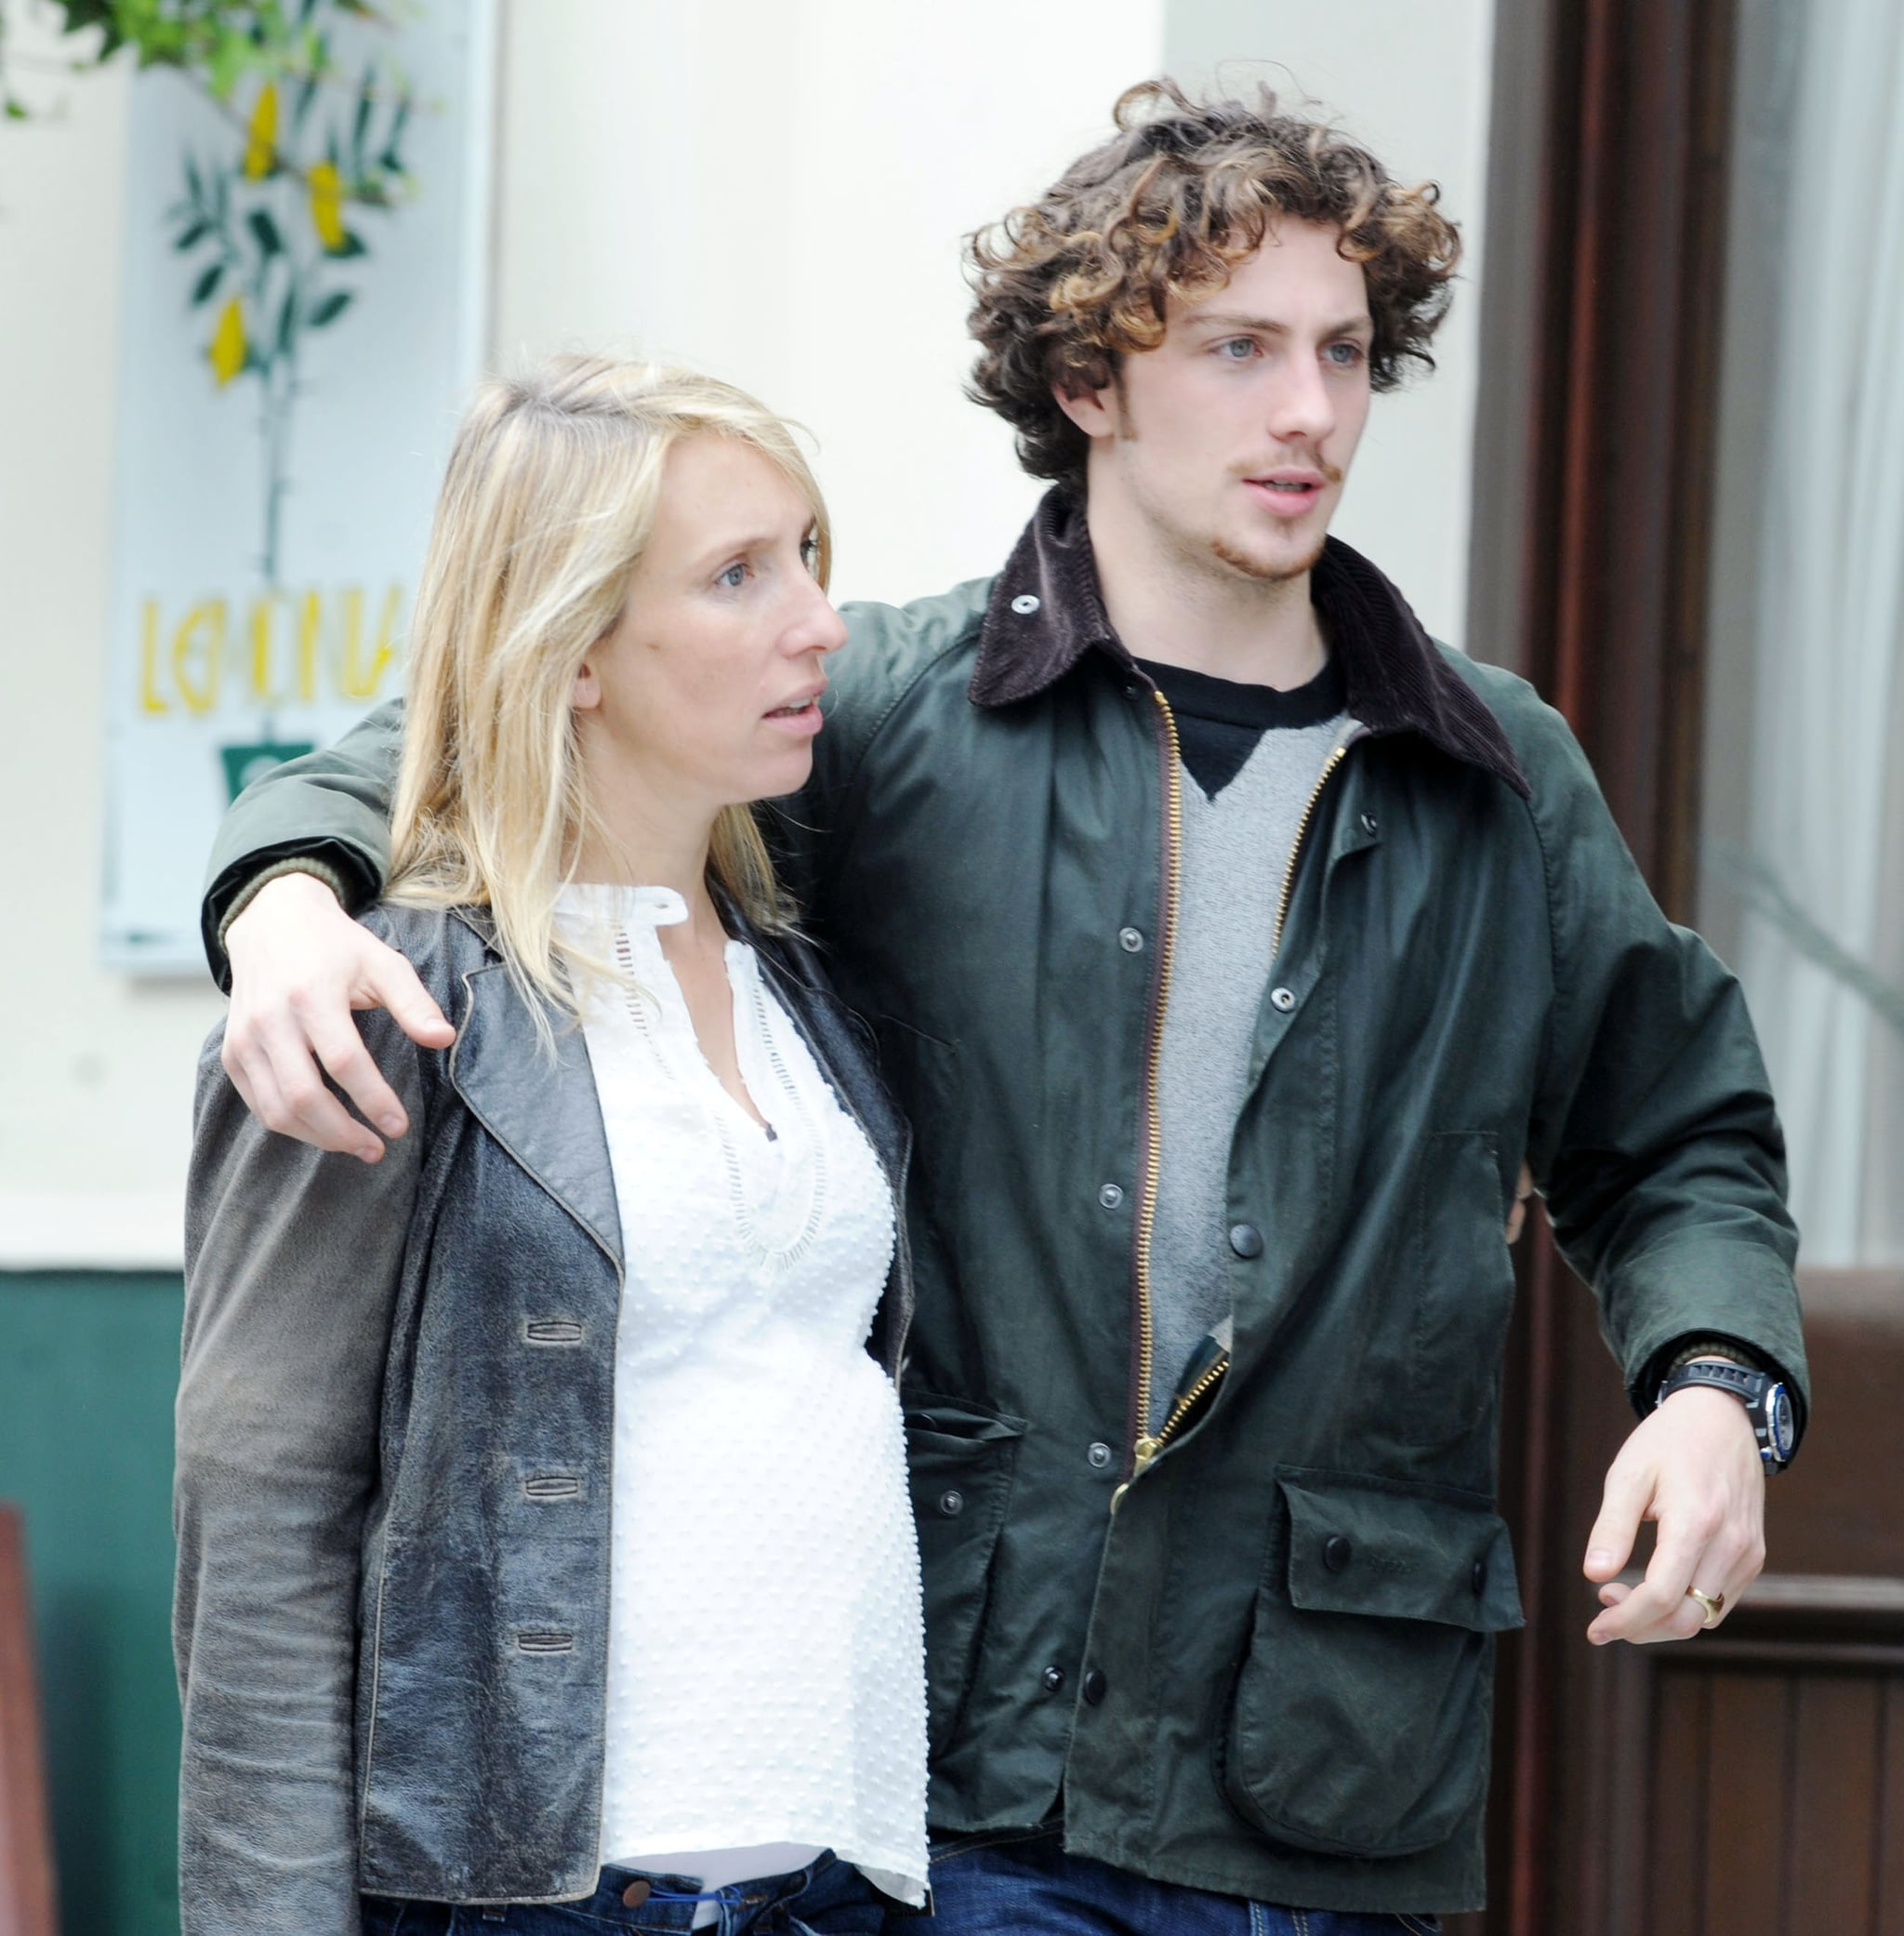 Pictures of Aaron Johnson Kissing Sam Taylor-Wood, His ...